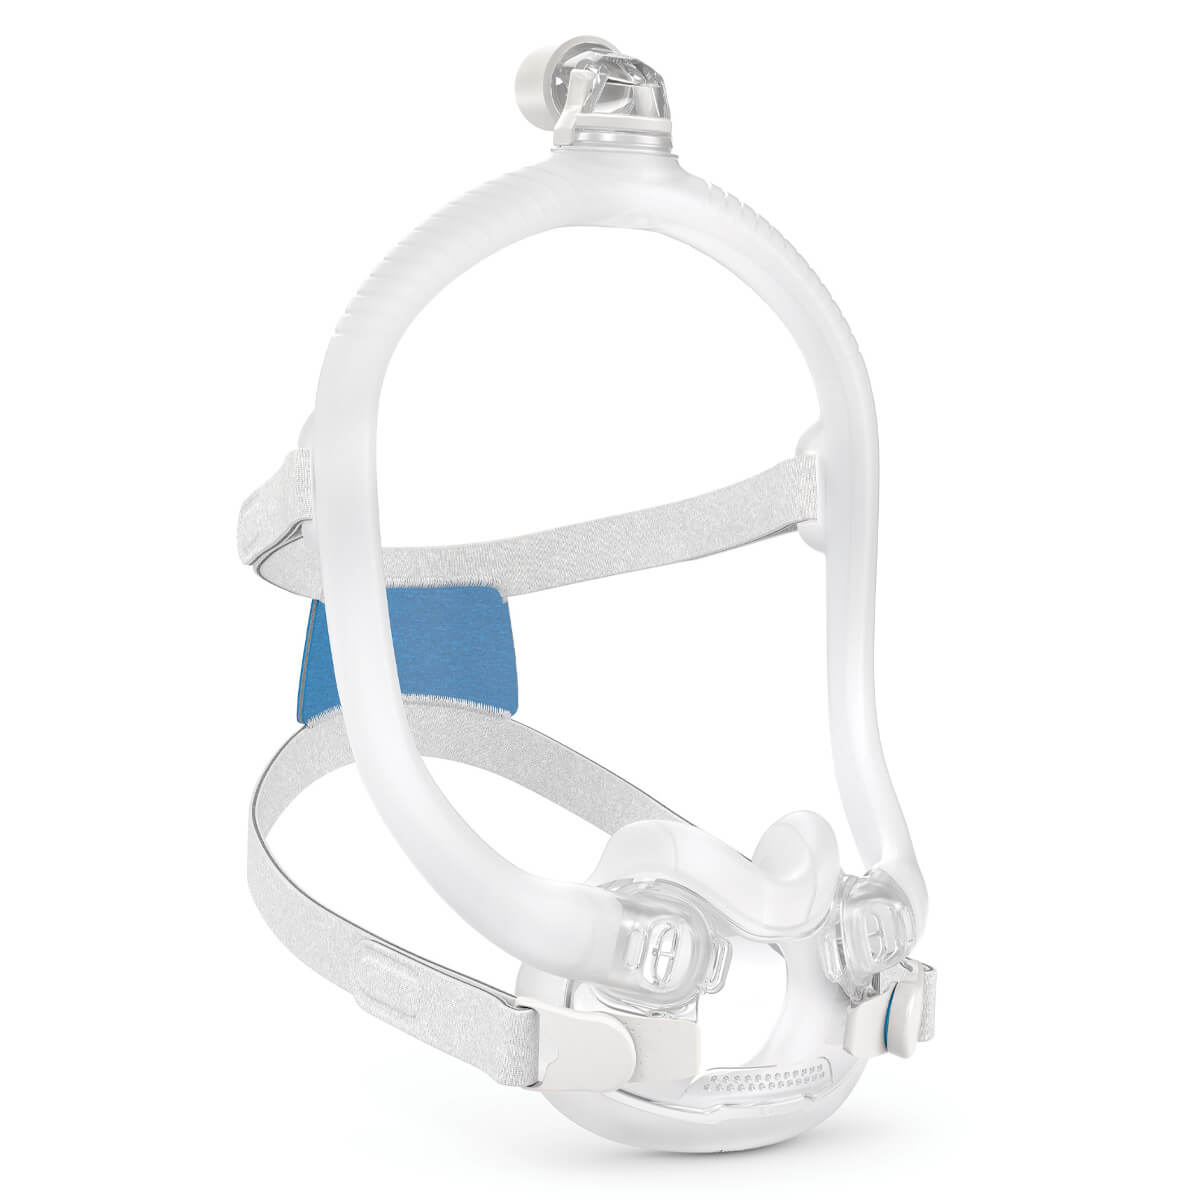 ResMeds AirFit F30i Full Face CPAP Mask with Headgear